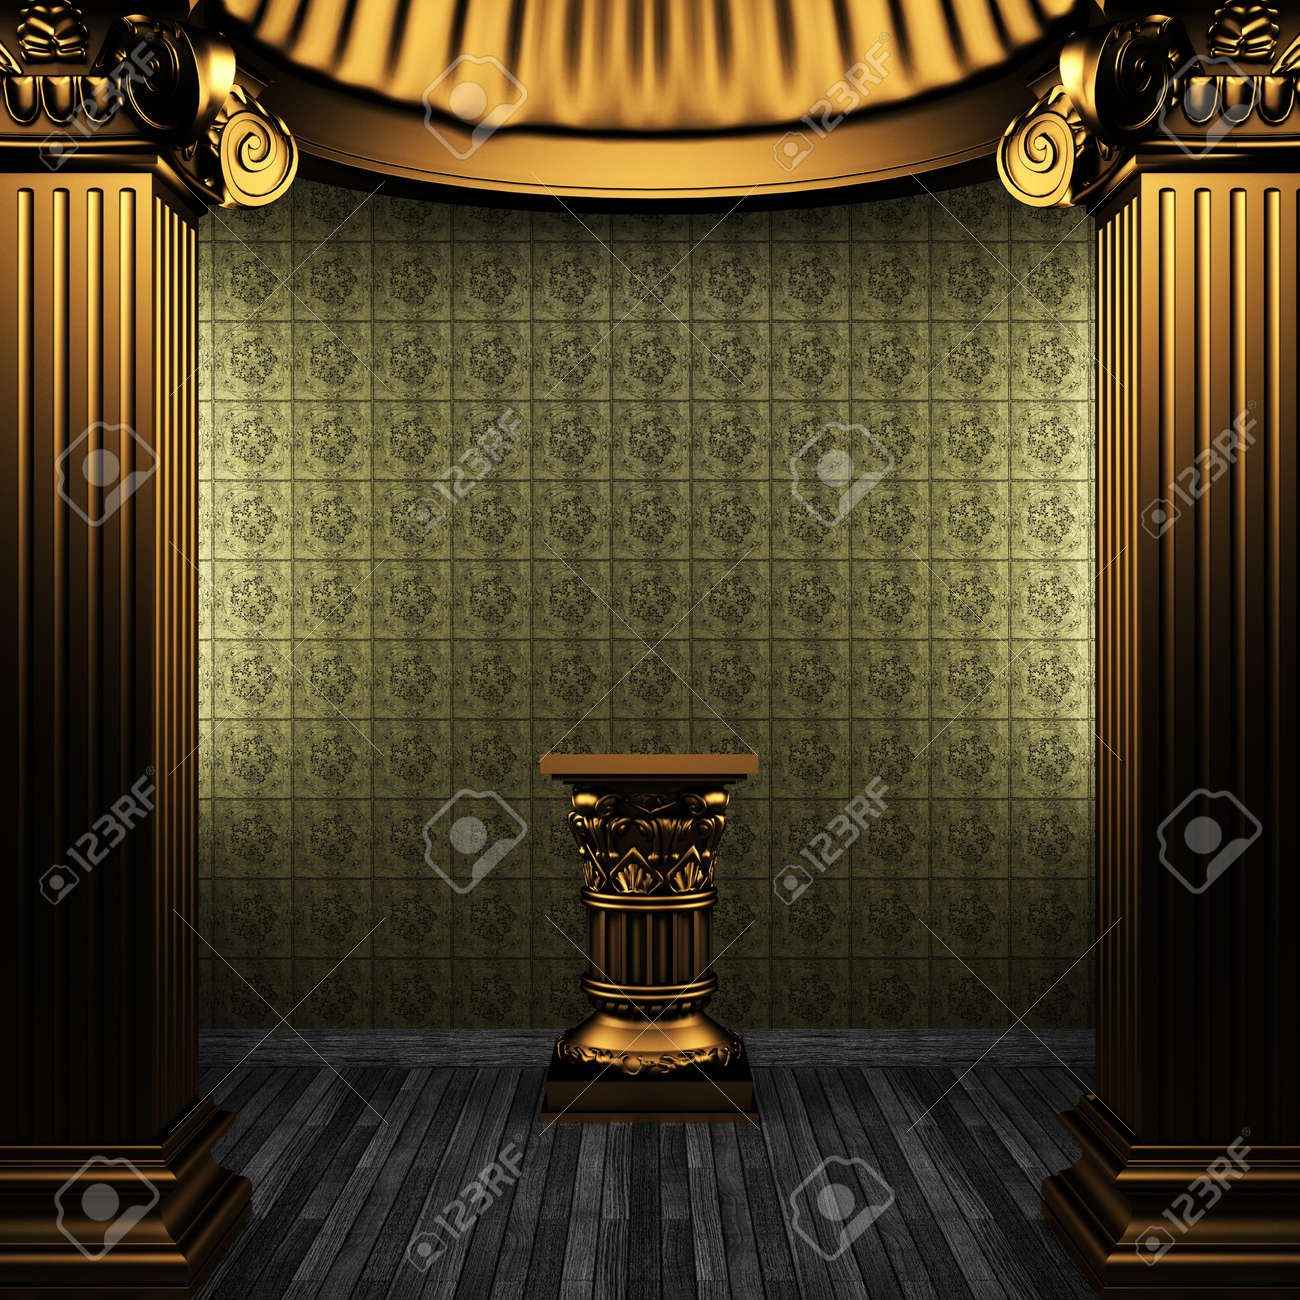 bronze columns, pedestal and tile wall made in 3D Stock Photo - 8499103